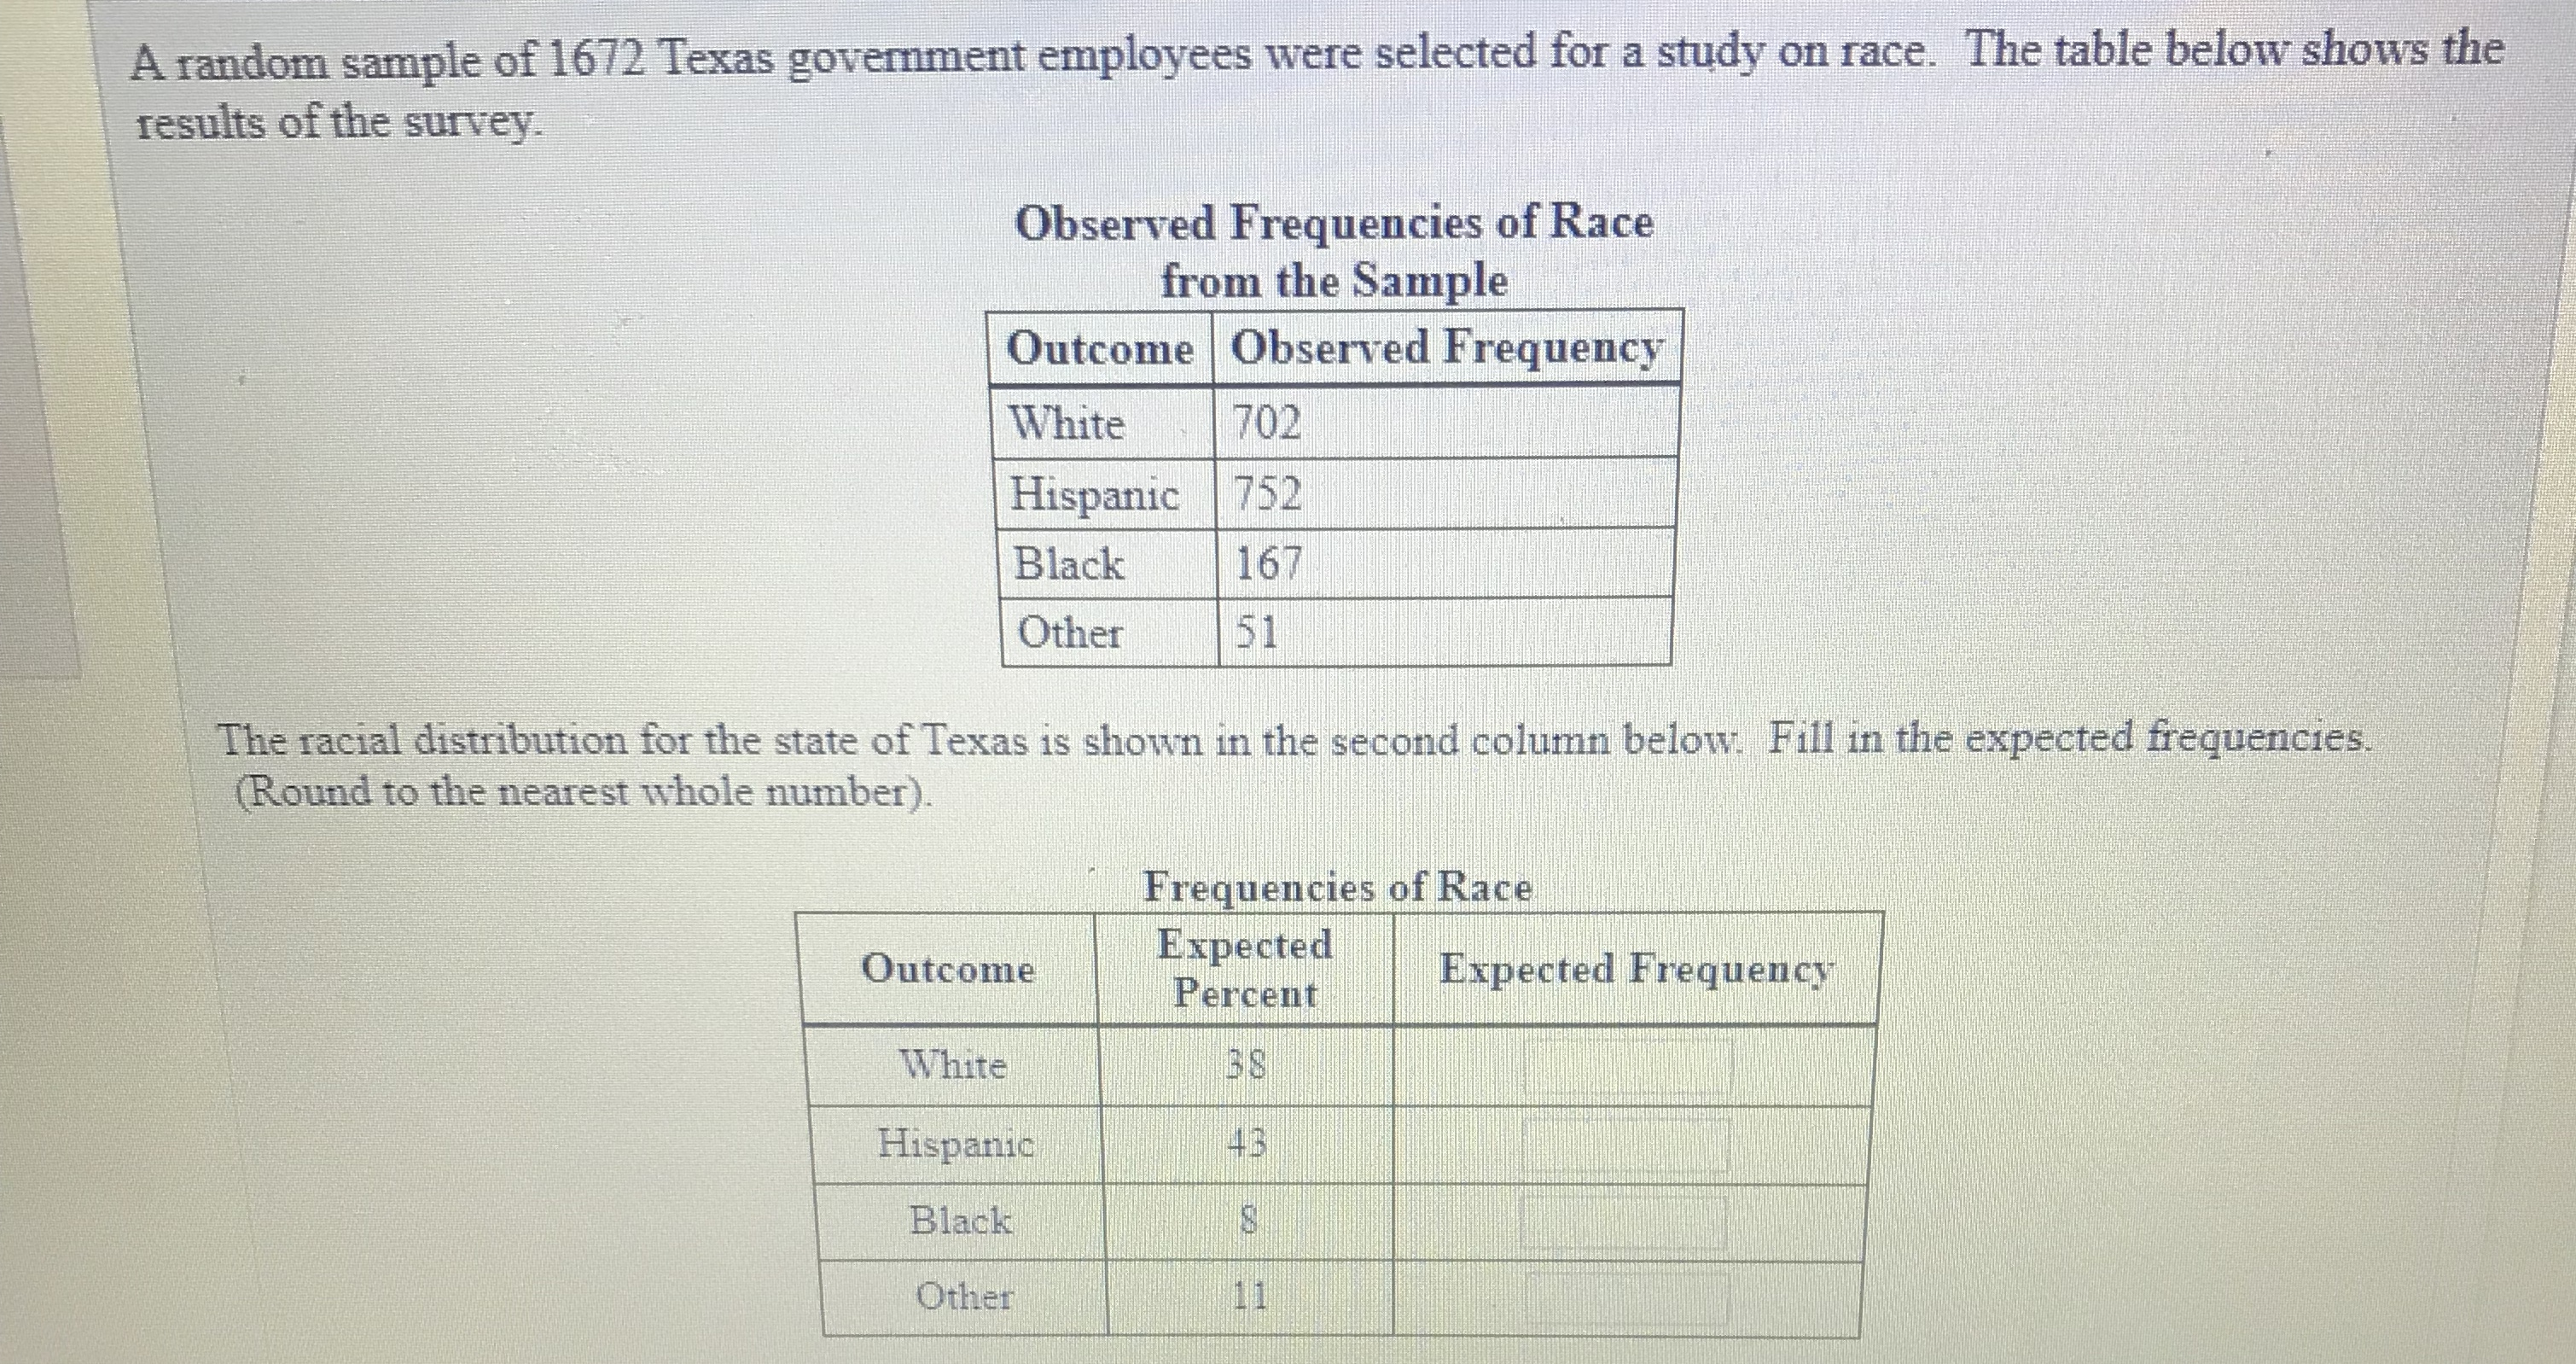 A random sample of 1672 Texas government employees were selected for a study on race. The table below shows the results of the survey. Observed Frequencies of Race from the Sample Outcome Observed Frequency White 702 Hispanic 752 Black 167 Other51 The racial distribution for the state of Texas is shown in the second column below. Fill in the expected frequencies. Round to the nearest whole number). Frequencies of Race ExpectedExpected Frequency Outcome White Hispanic Black Other Percent 3 S 43